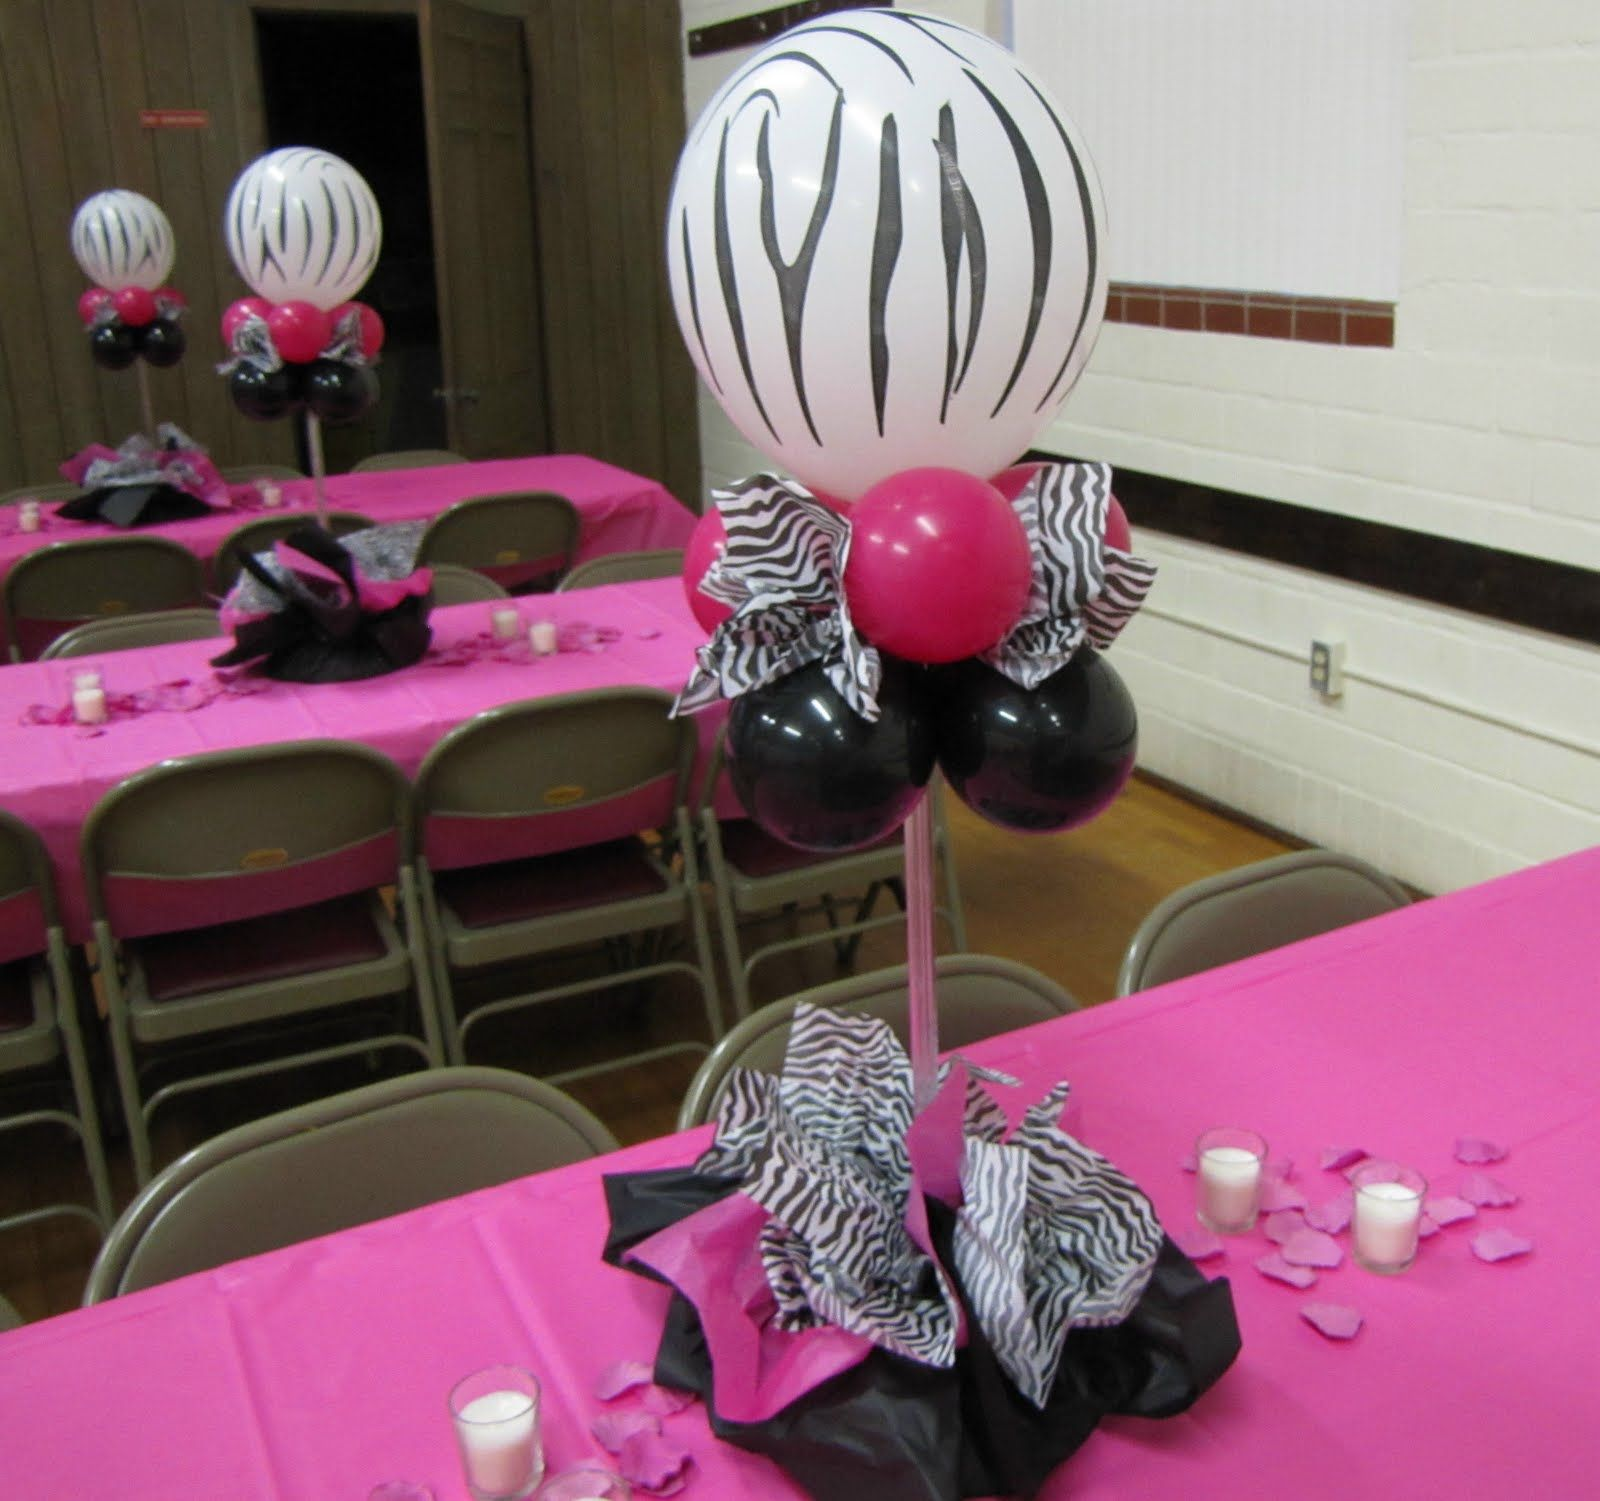 Party People Celebration Company   Special Event Decor Custom Balloon Decor  And Fabric Designs: March